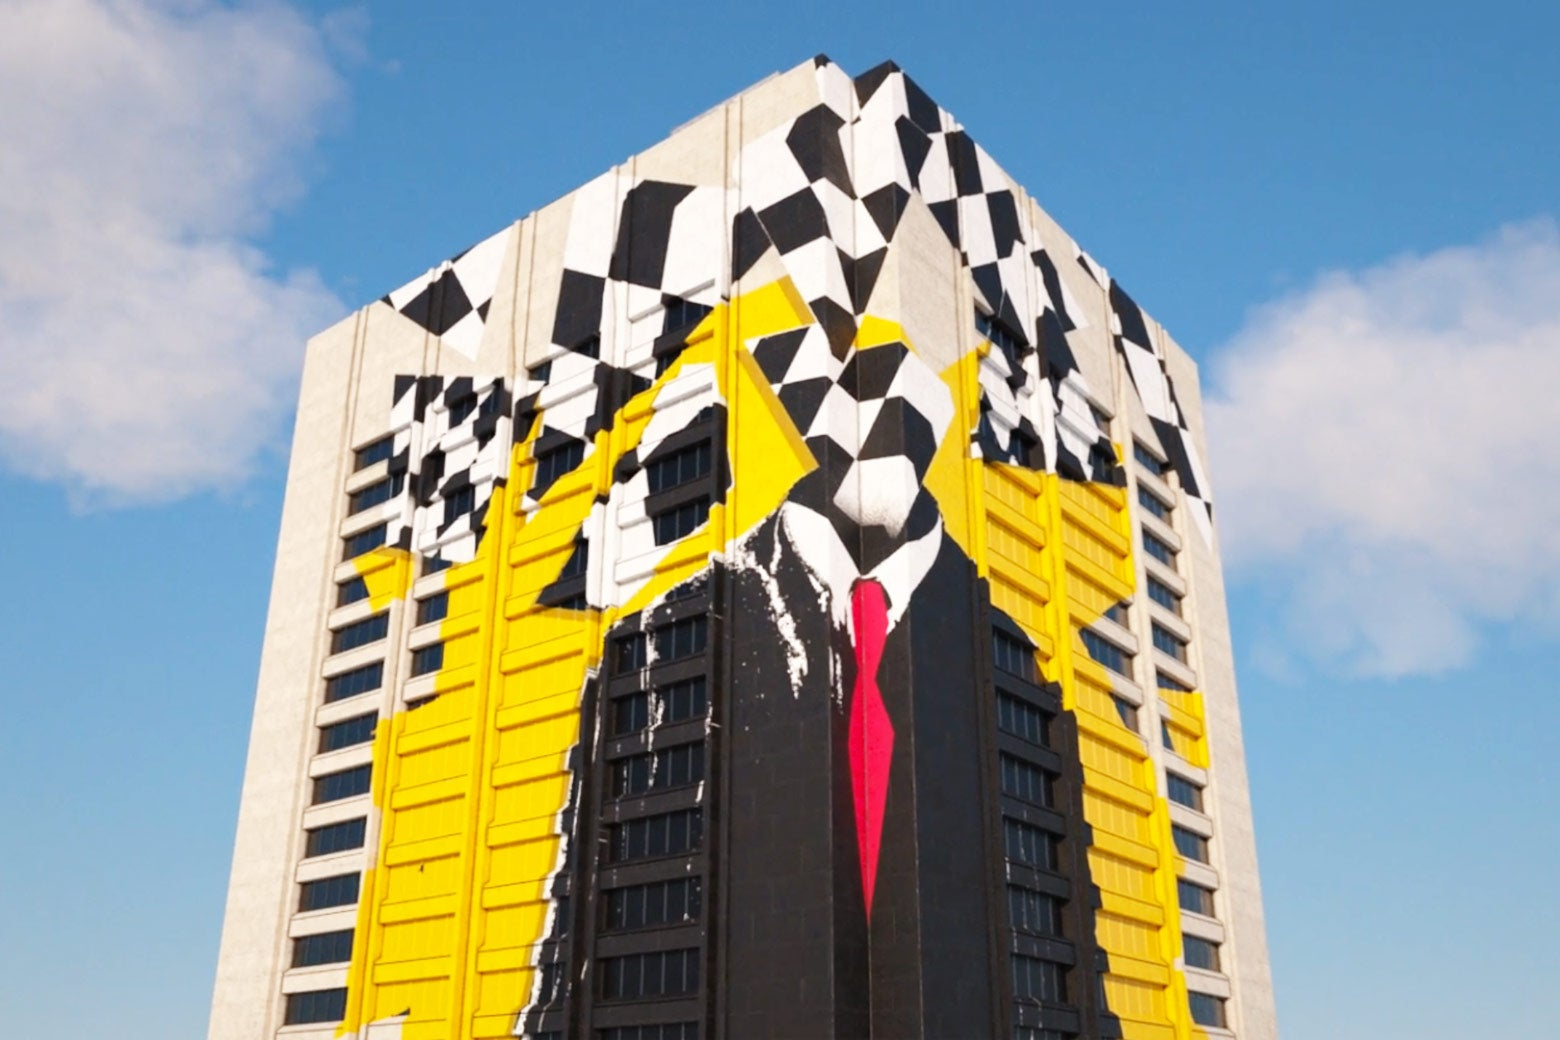 "Animation from Season 3, Episode 2 of Serial: ""You've Got Some Gauls."" It's a slow pan up a building that depicts a large mural of a male judge offset by checker pattern and yellow paint."